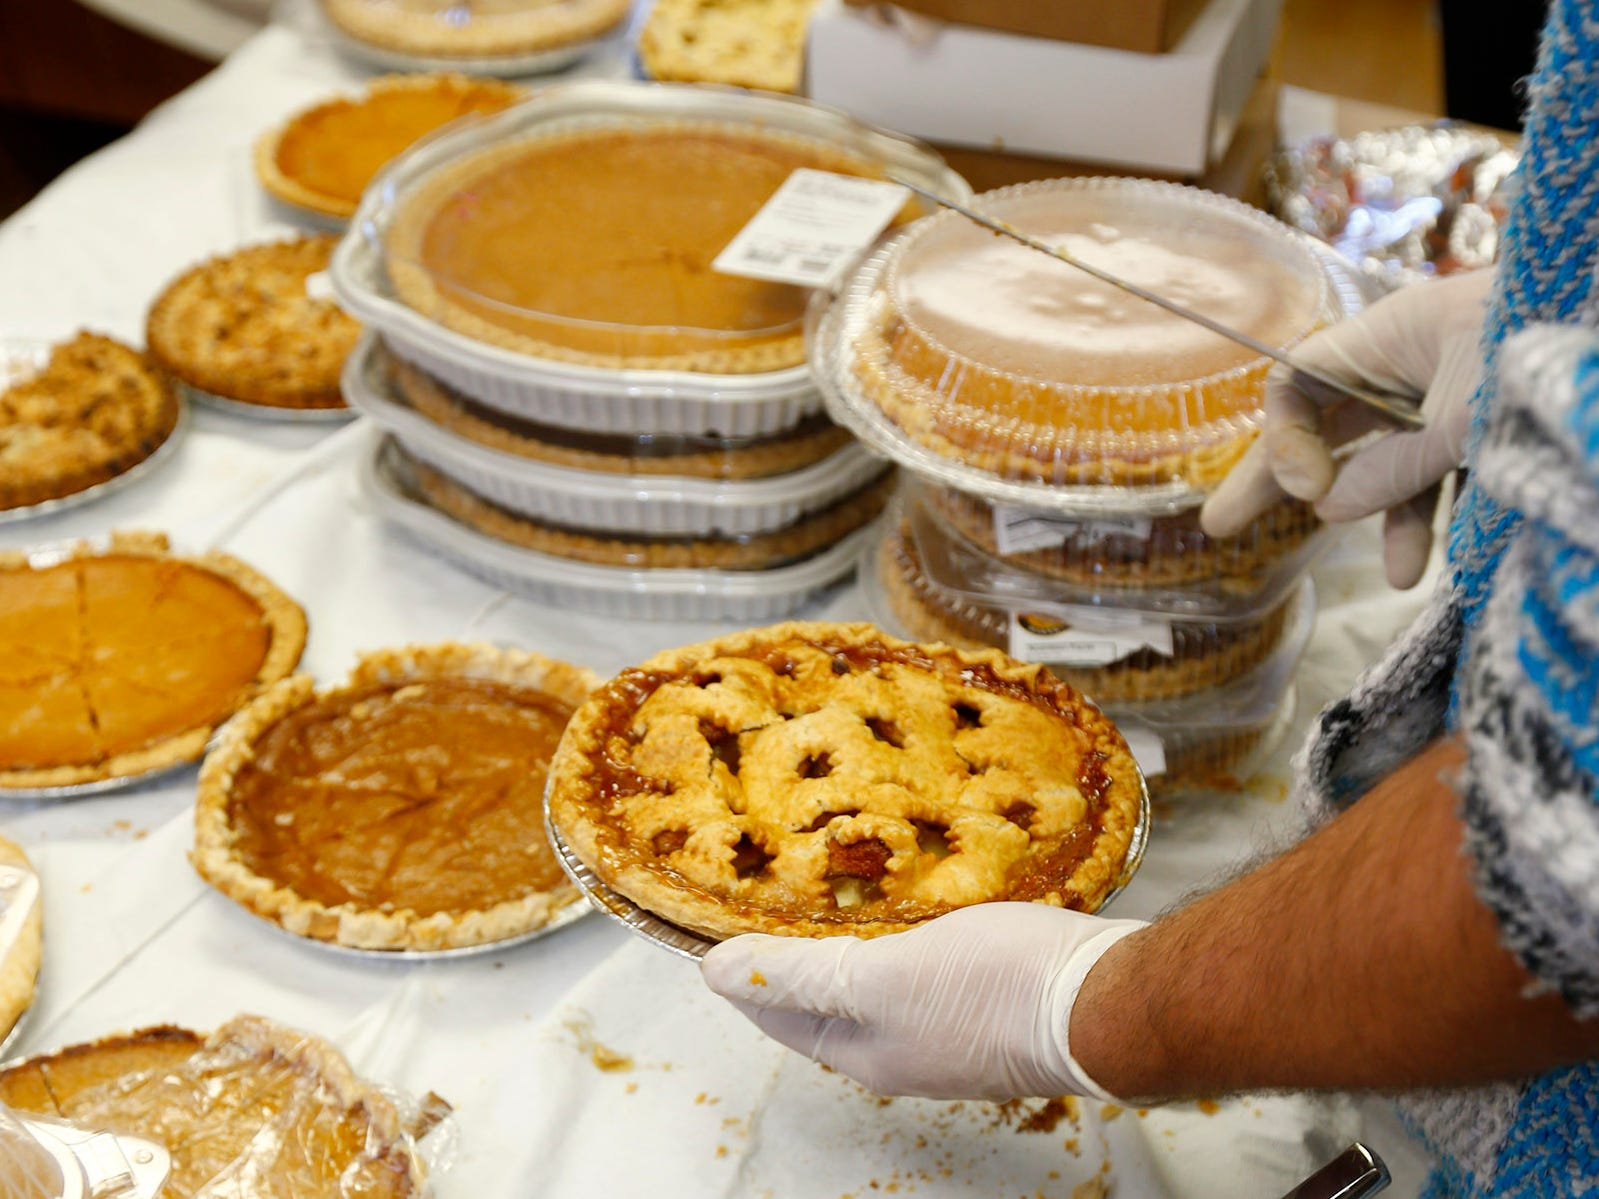 Pies are plentiful at The Church of the Epiphany in Brick as they prepare and deliver meals to over 1,200 people in Monmouth and Ocean counties on Thanksgiving Day, November 22, 2018.